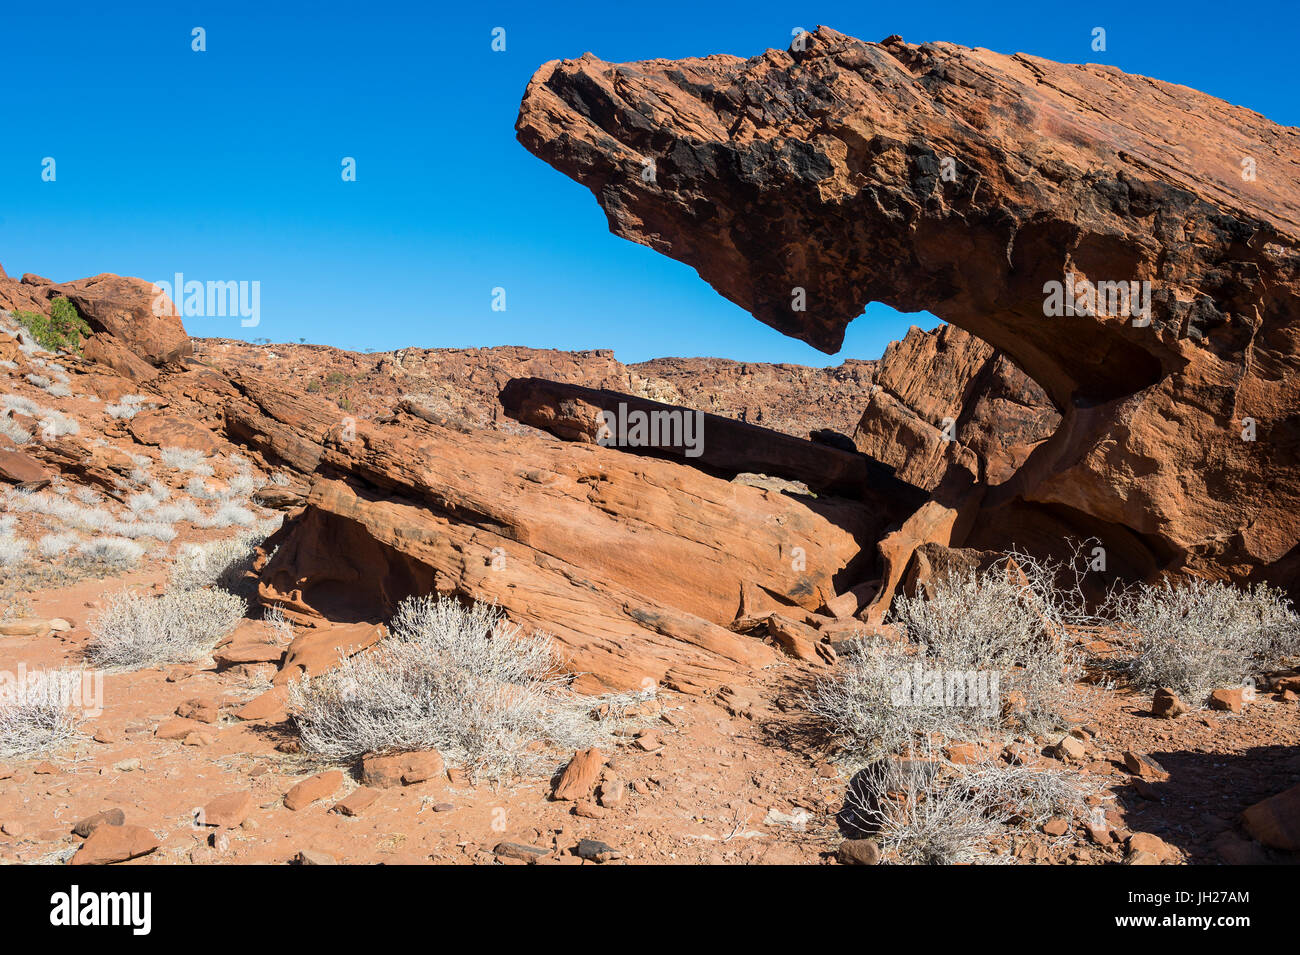 Interesting rock formation in Twyfelfontein, Namibia, Africa - Stock Image